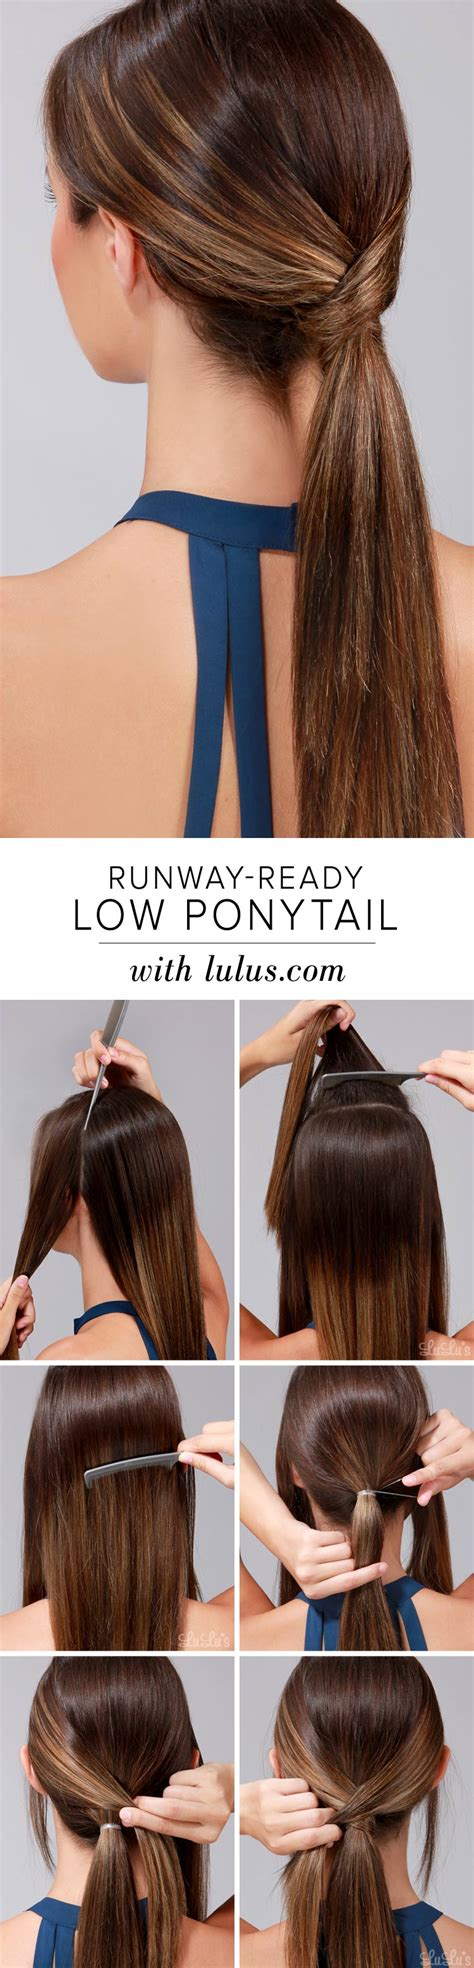 easy indian hairstyles to make on our own lulu s how to runway ready low ponytail lulus com